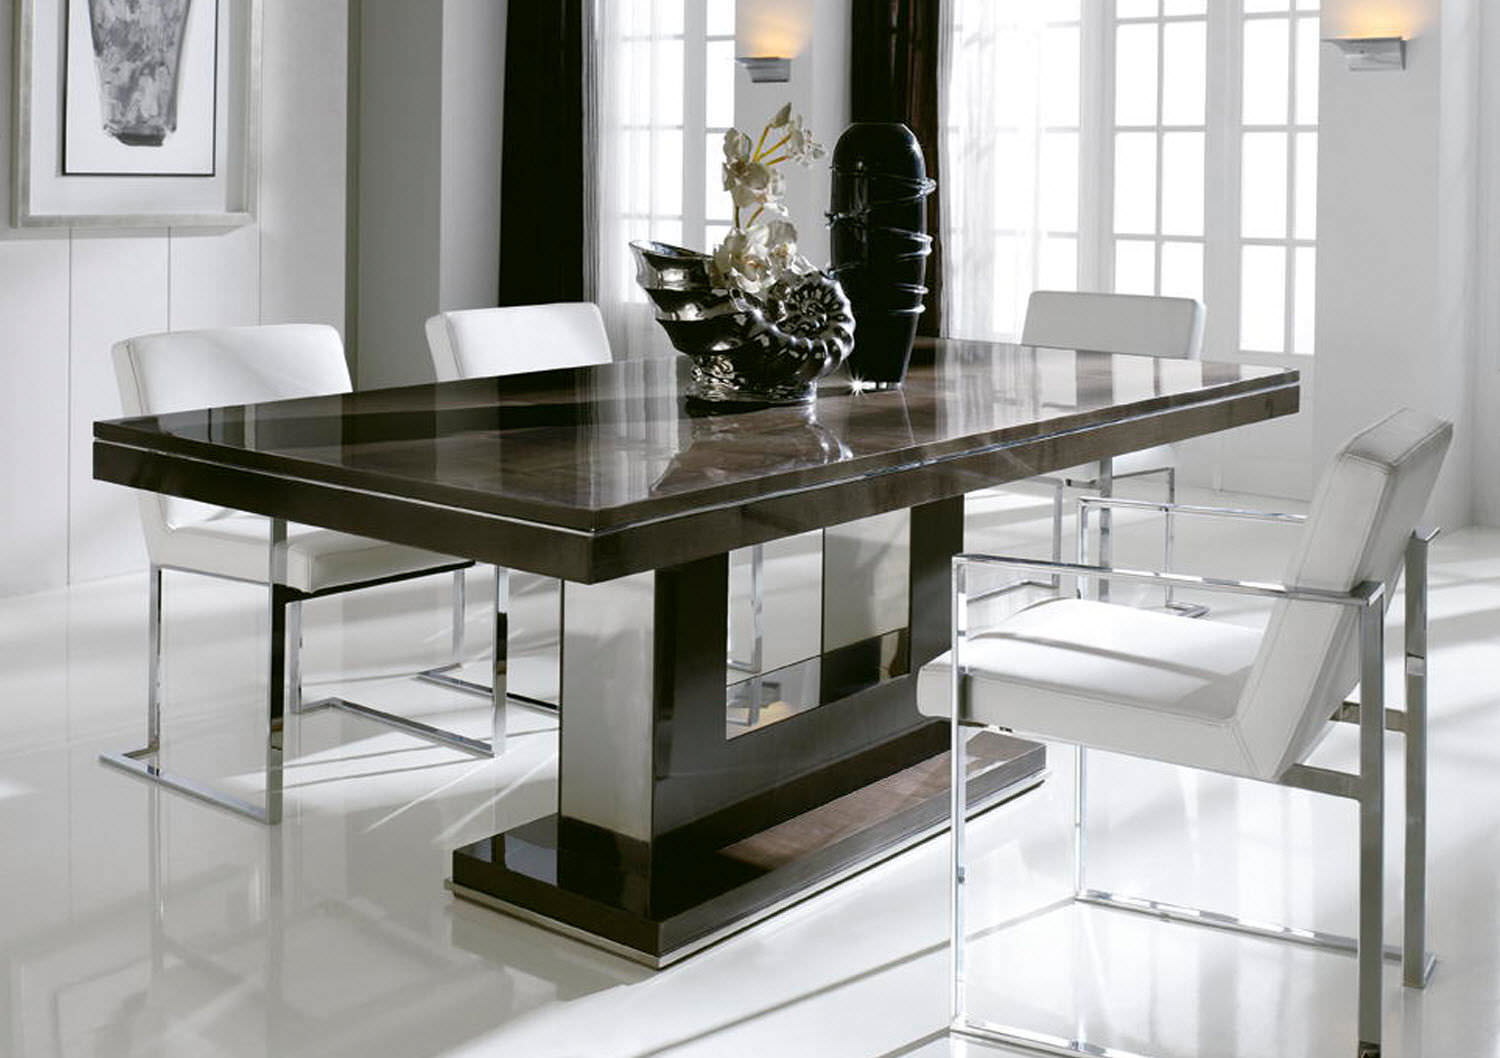 Entertain your guests with perfect dining table midcityeast for Innovative dining table designs